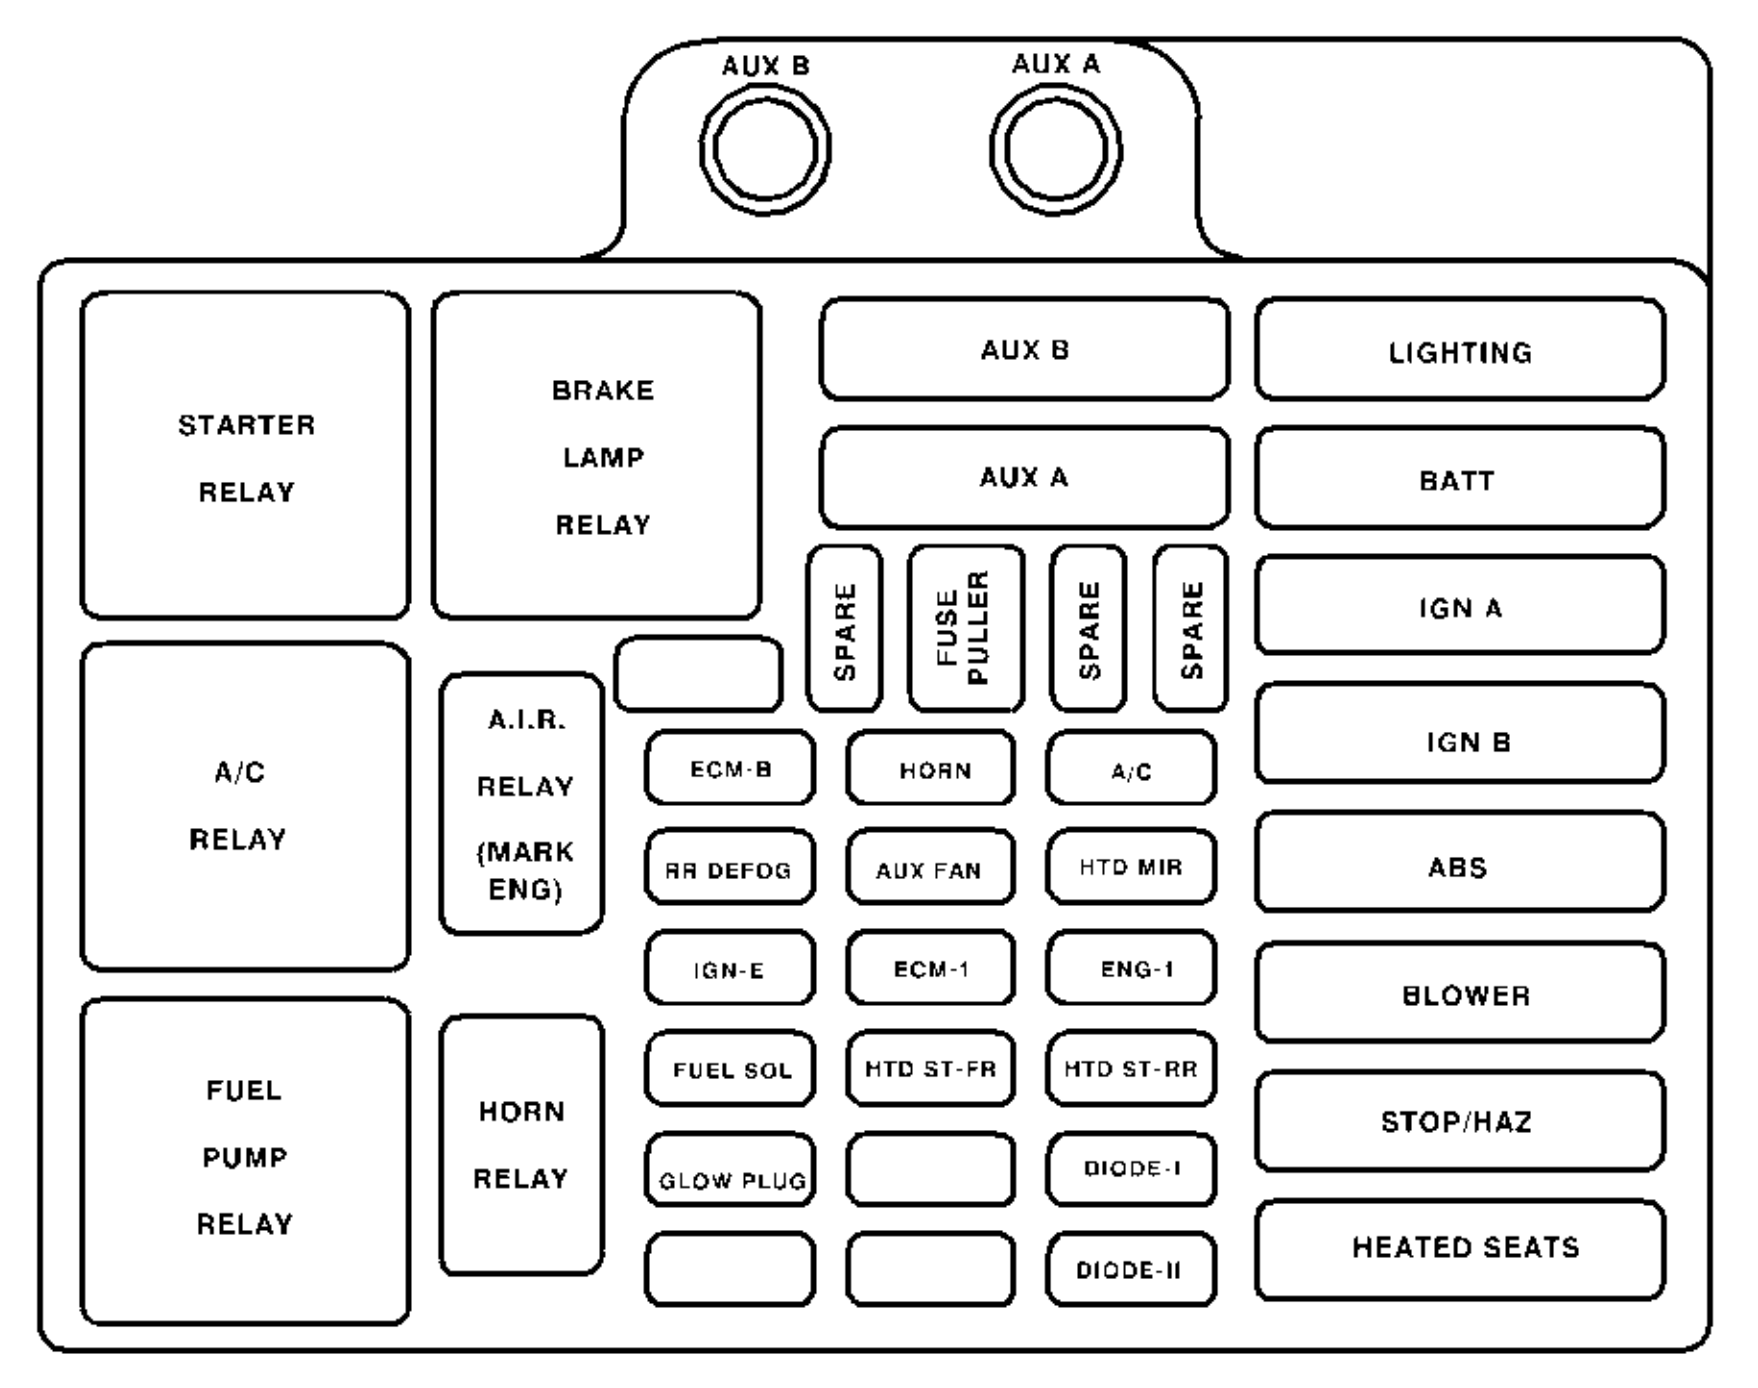 hight resolution of fuse box diagram 1998 chevy silverado truck wiring diagram meta 1998 chevy truck fuse block diagram